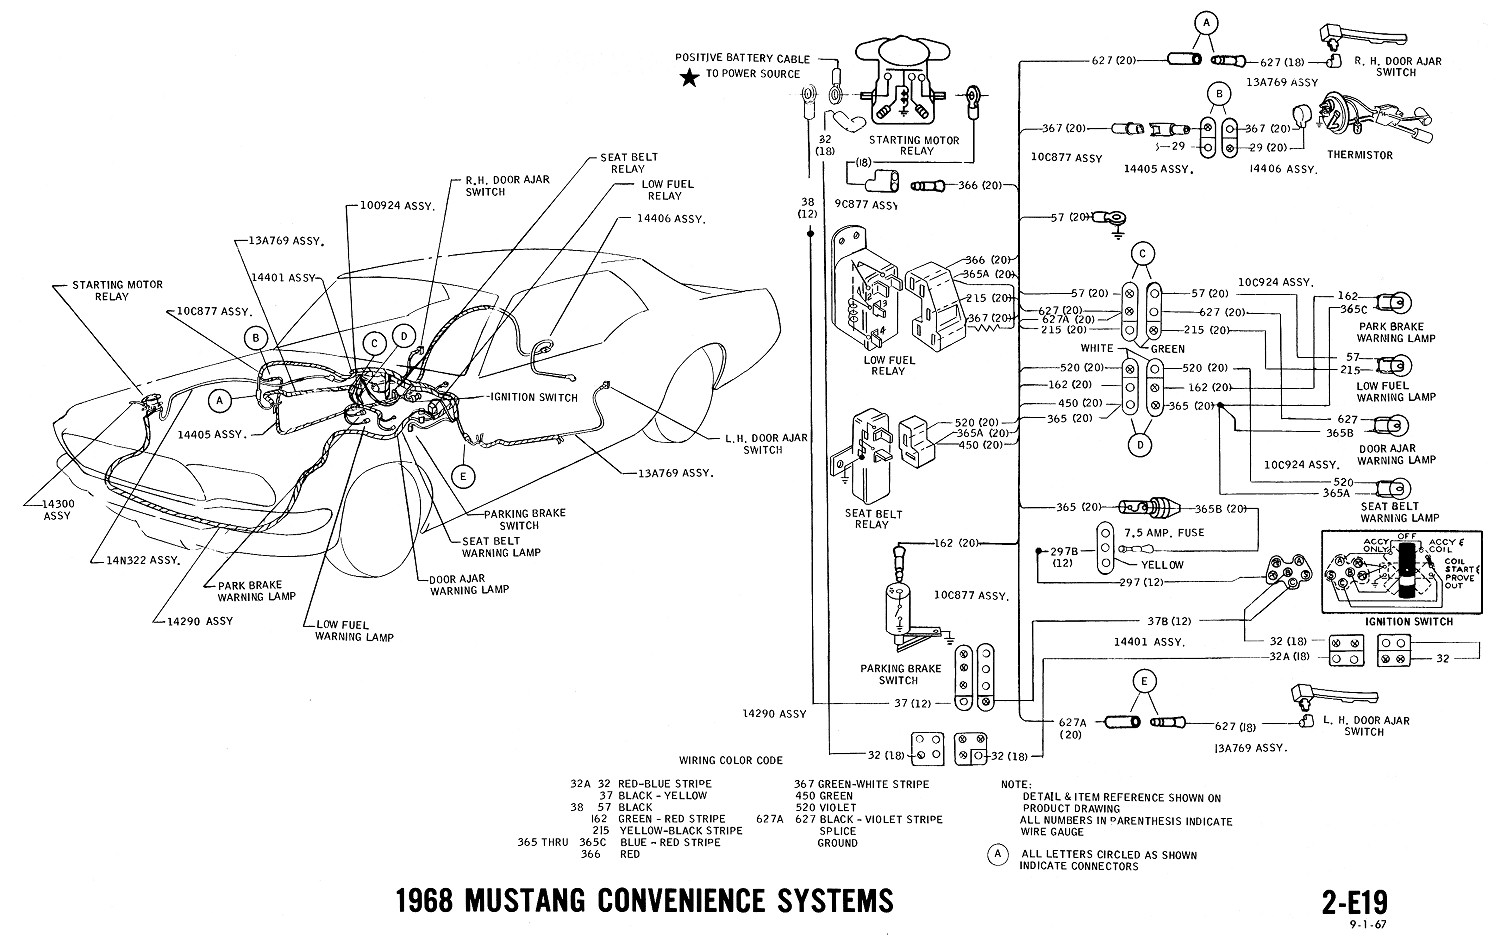 E19 1968 mustang wiring diagrams evolving software Multi Speed Blower Motor Wiring at aneh.co